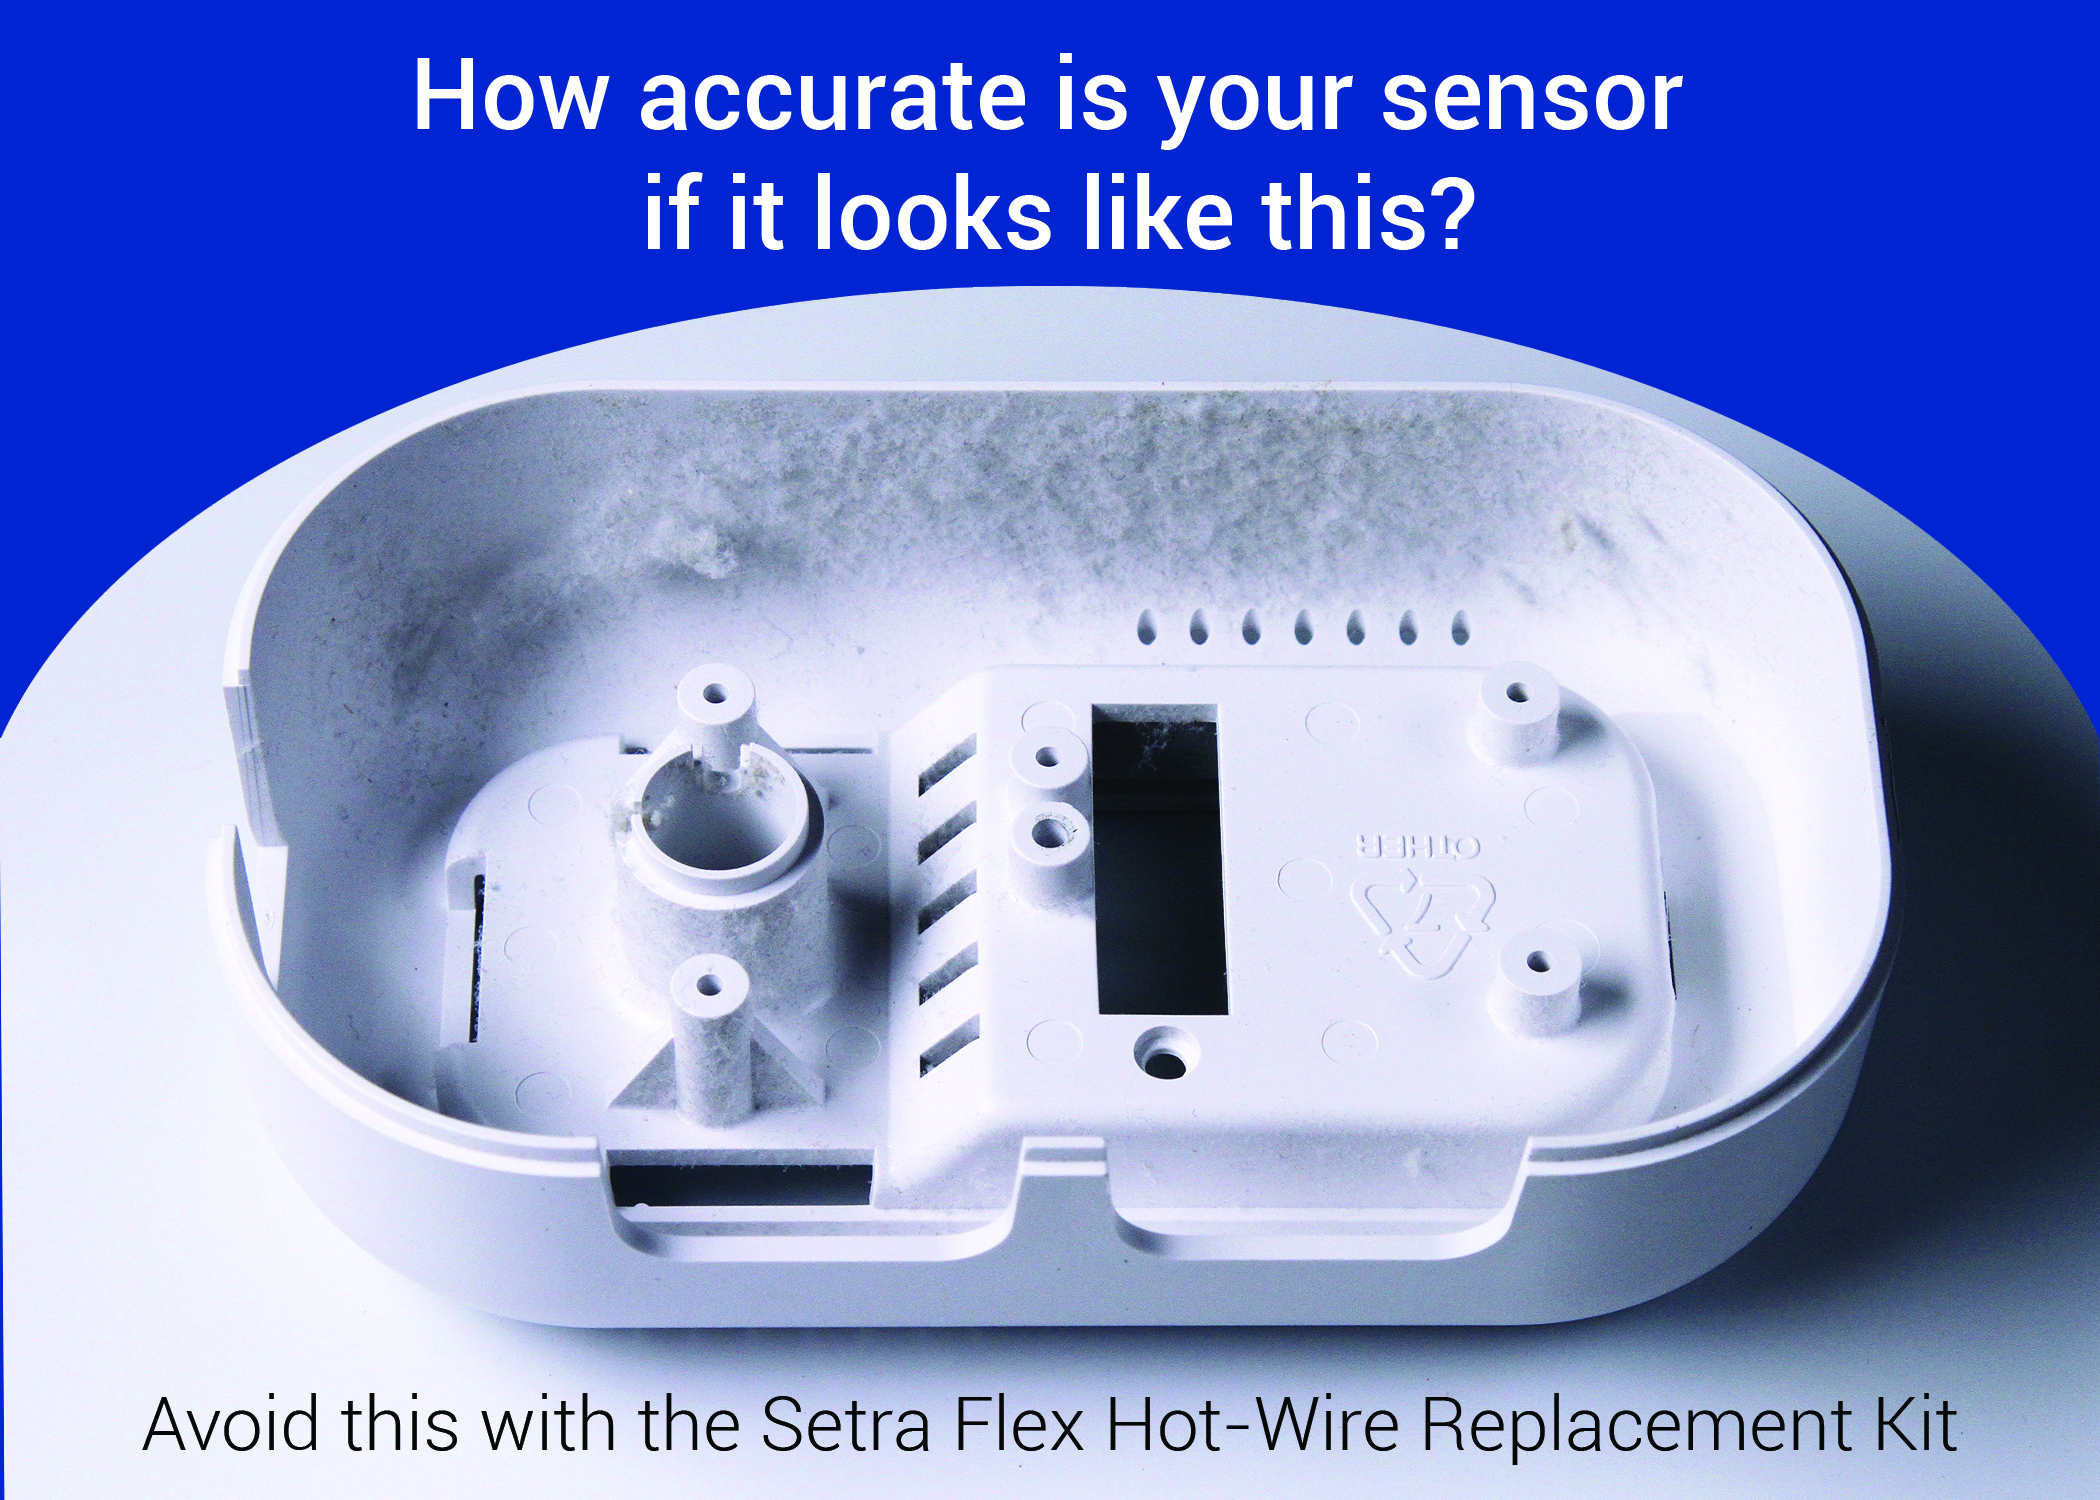 Does your sensor look like this